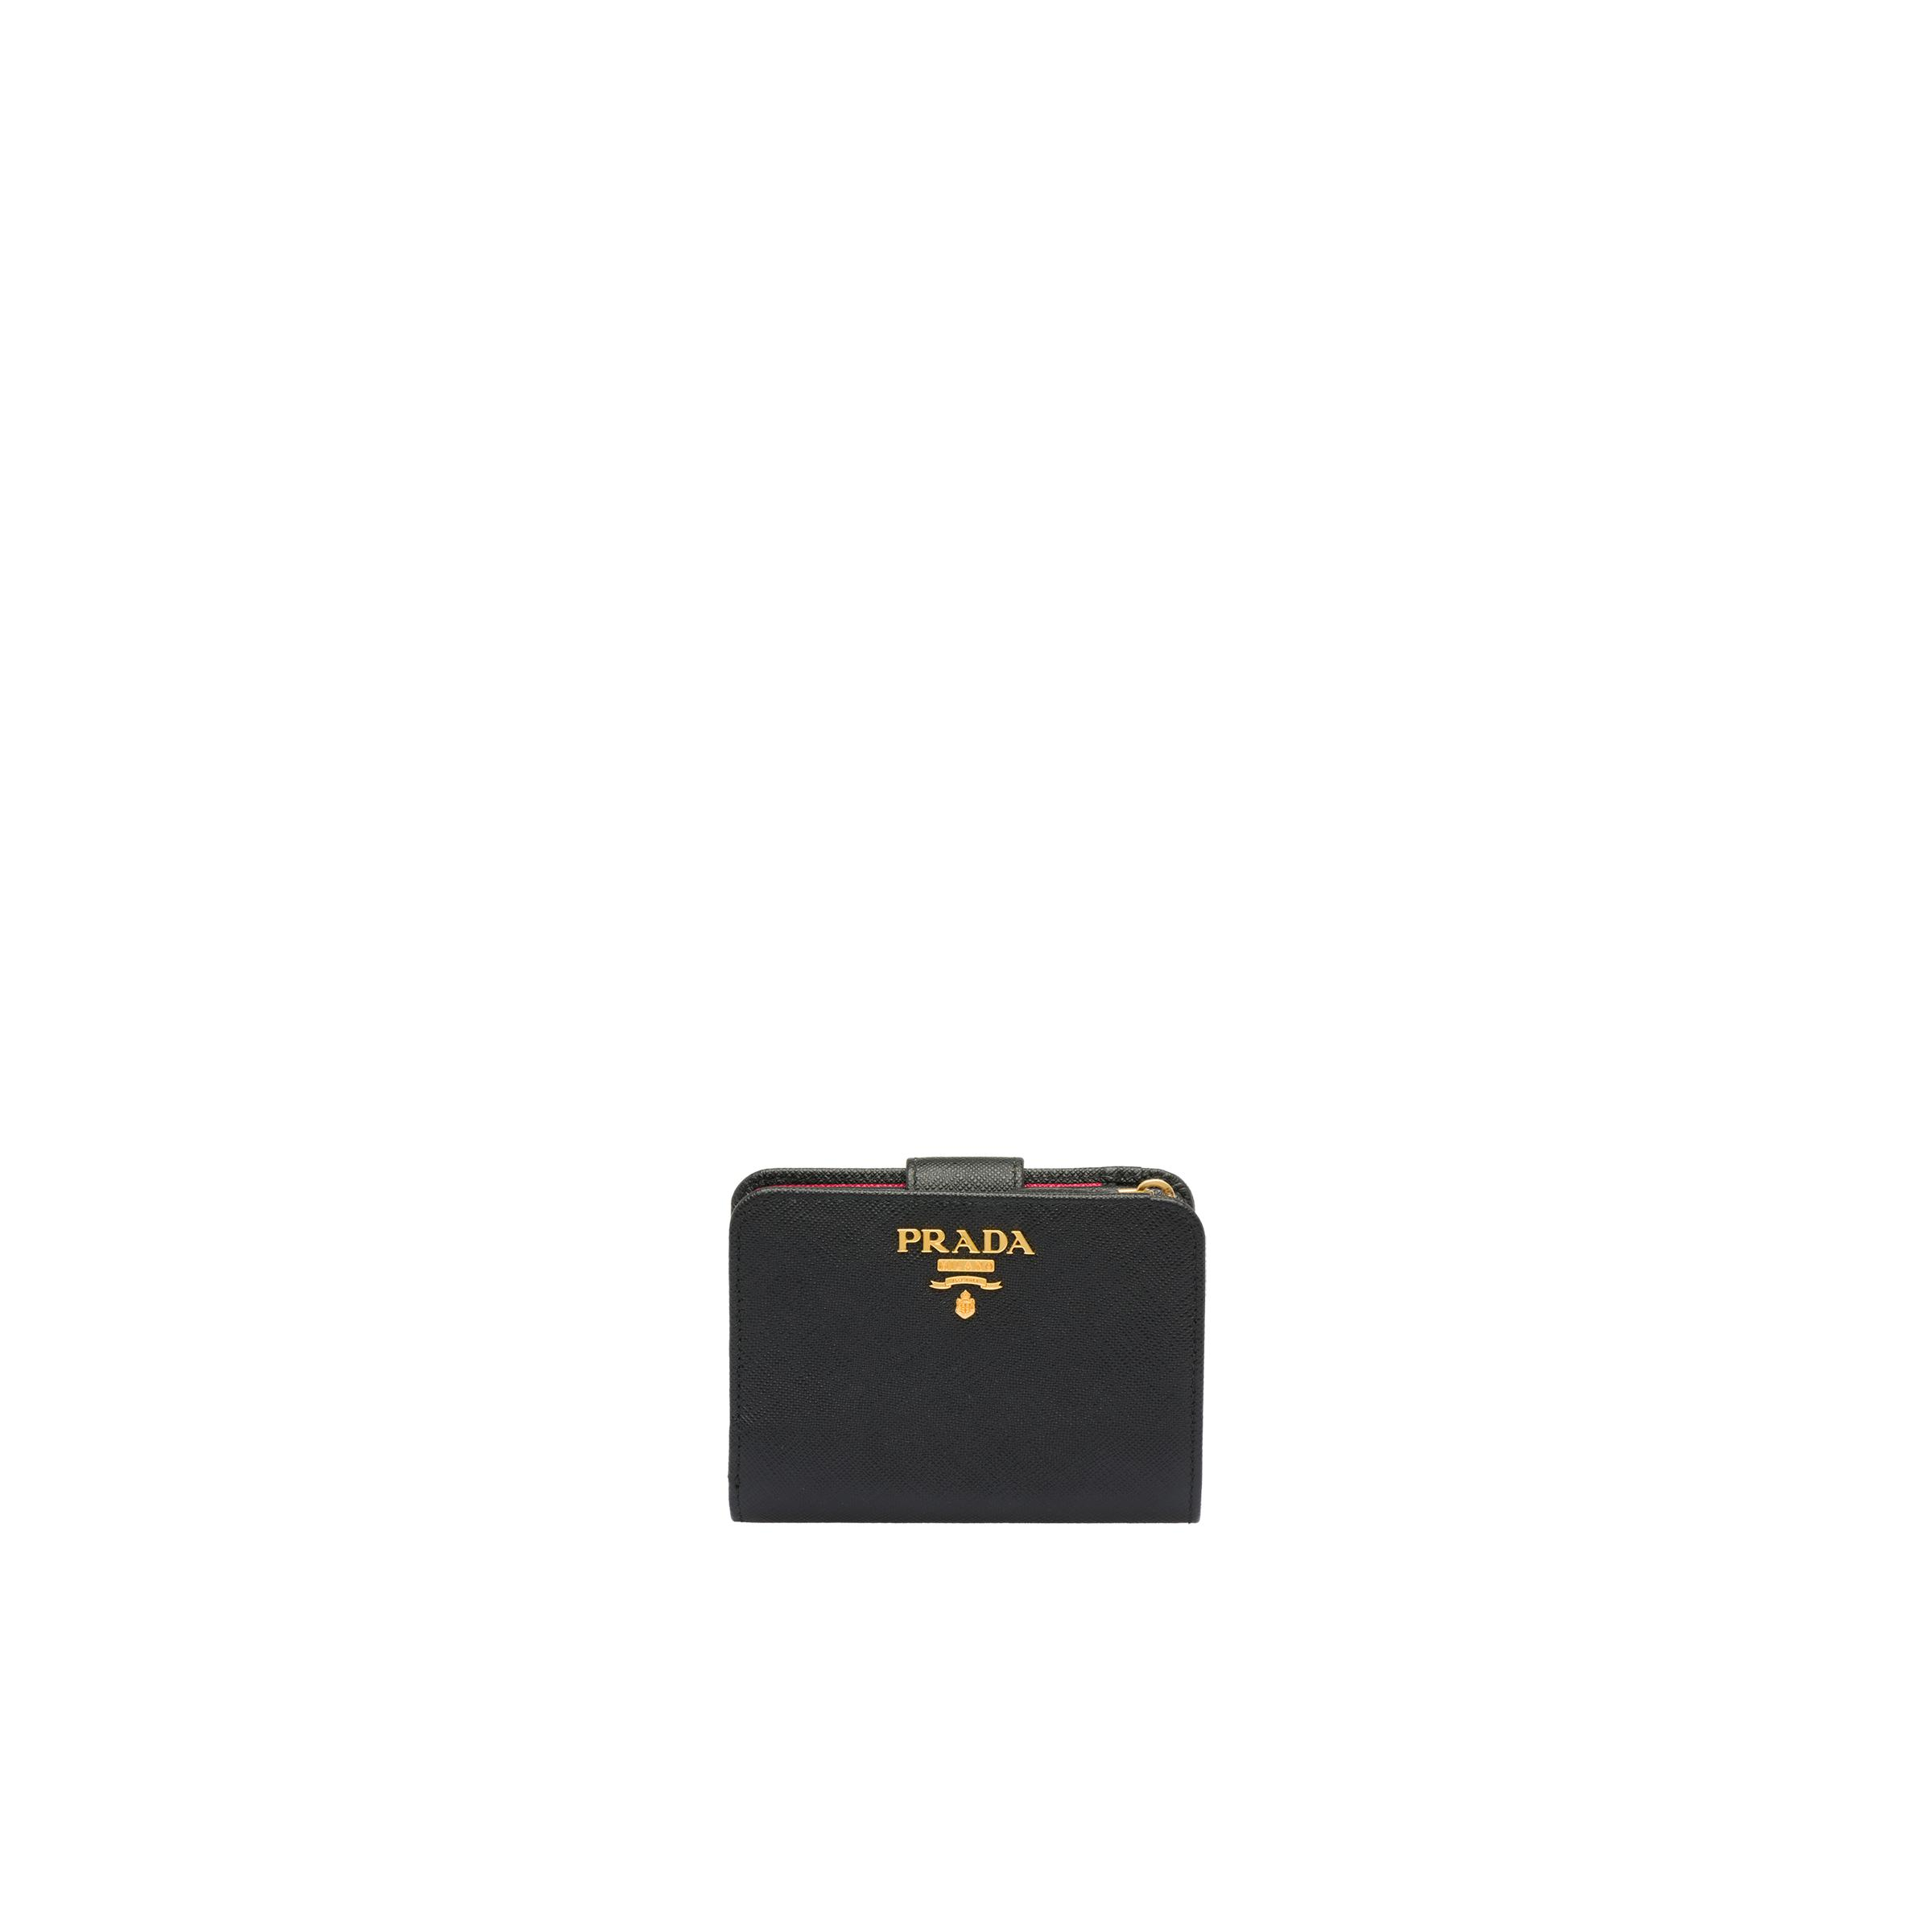 Small Saffiano Leather Wallet Women Black/hibiscus